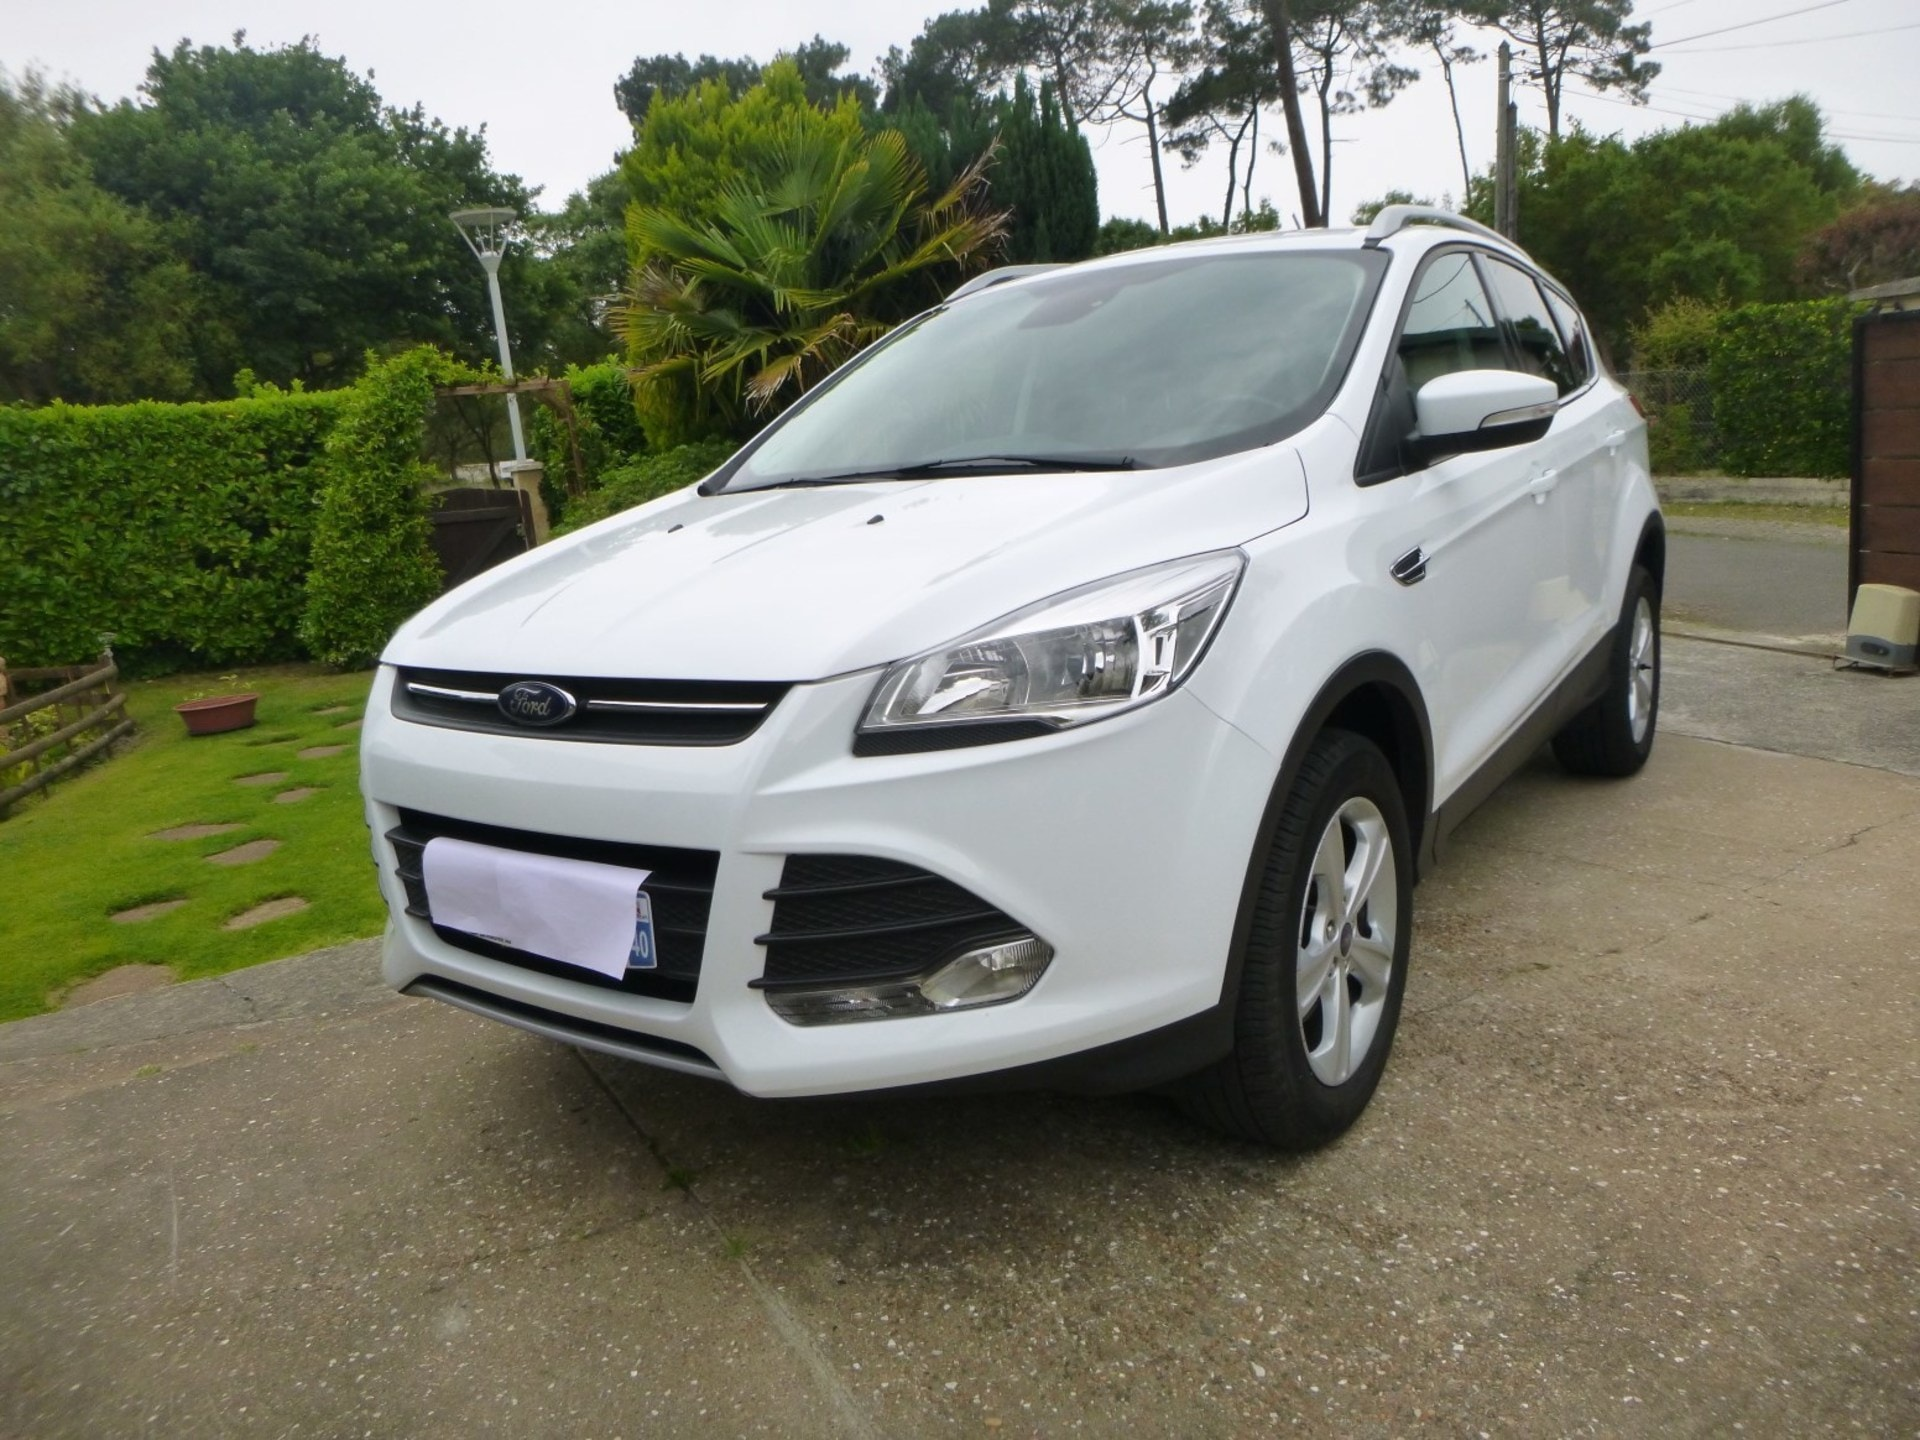 ford kuga 1 5 ecoboost 120 titanium 2wd start stop carventura. Black Bedroom Furniture Sets. Home Design Ideas